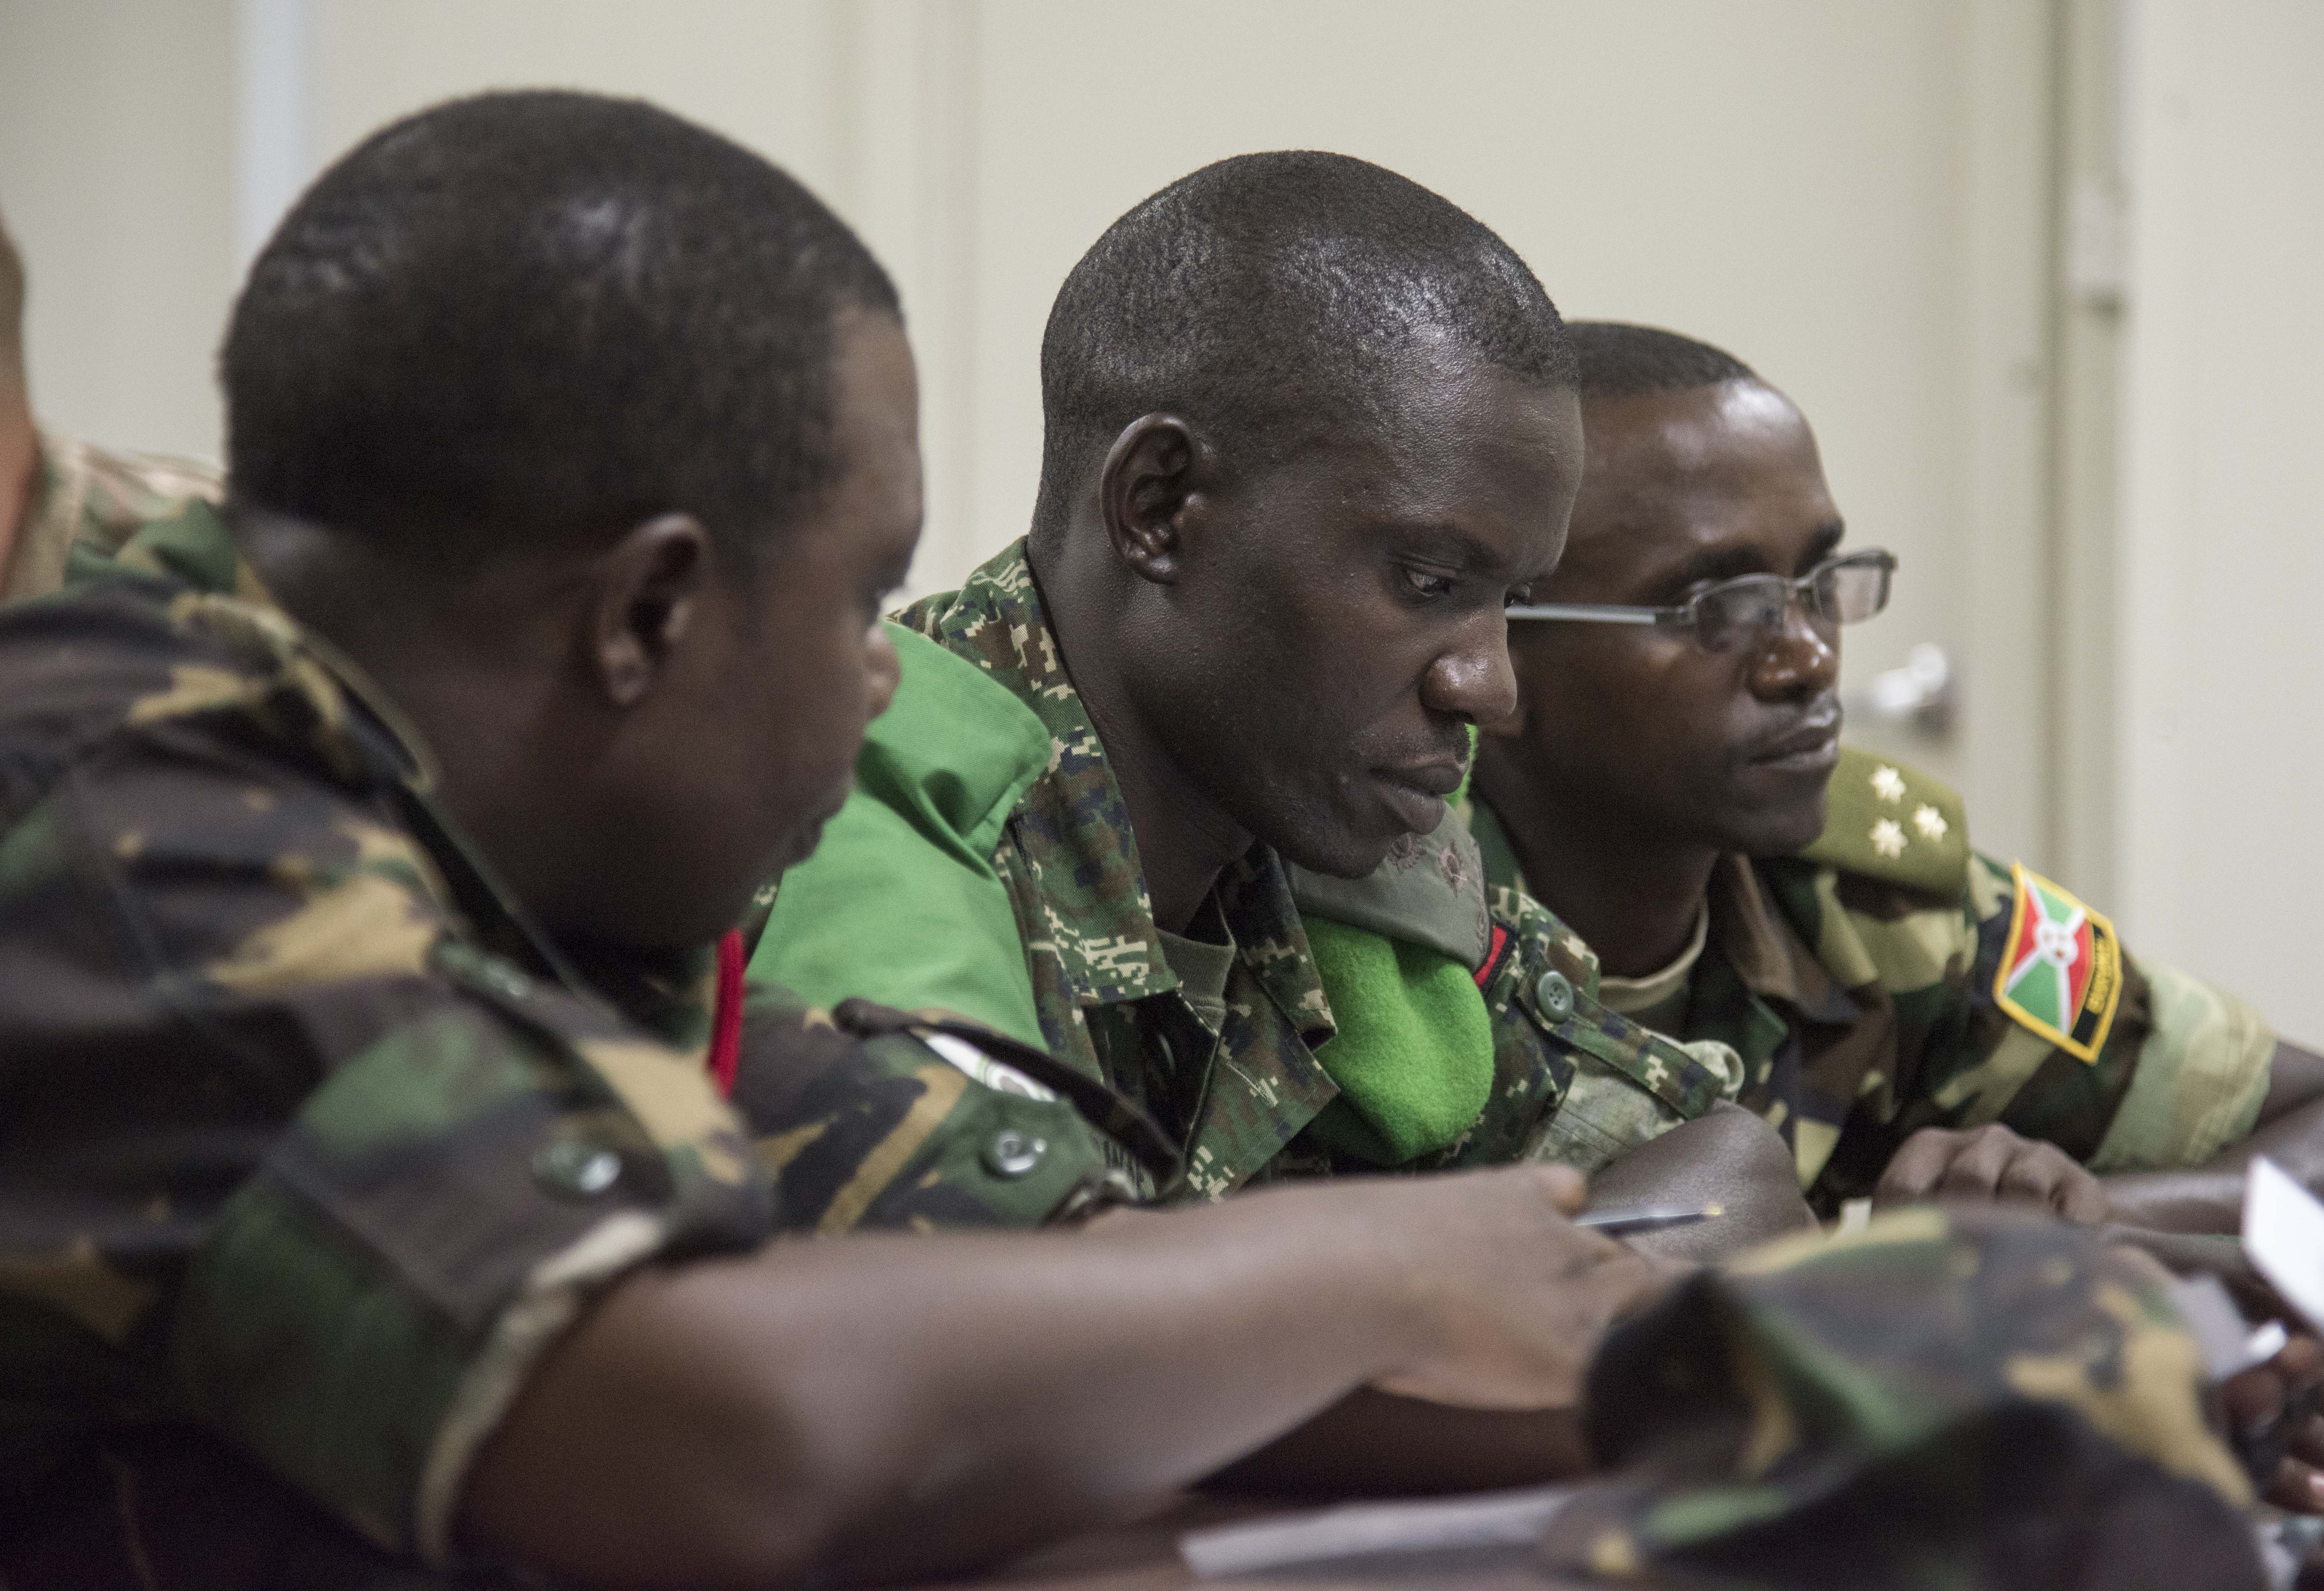 Military members from Tanzania, Uganda and Burundi prepare for simulated interaction with local media during the Public Information Officer Conference, hosted by Combined Joint Task Force-Horn of Africa, at Camp Lemonnier, Djibouti, Nov. 4, 2015. The exercise enabled participants to practice building report with media to promote mutually beneficial relationships.